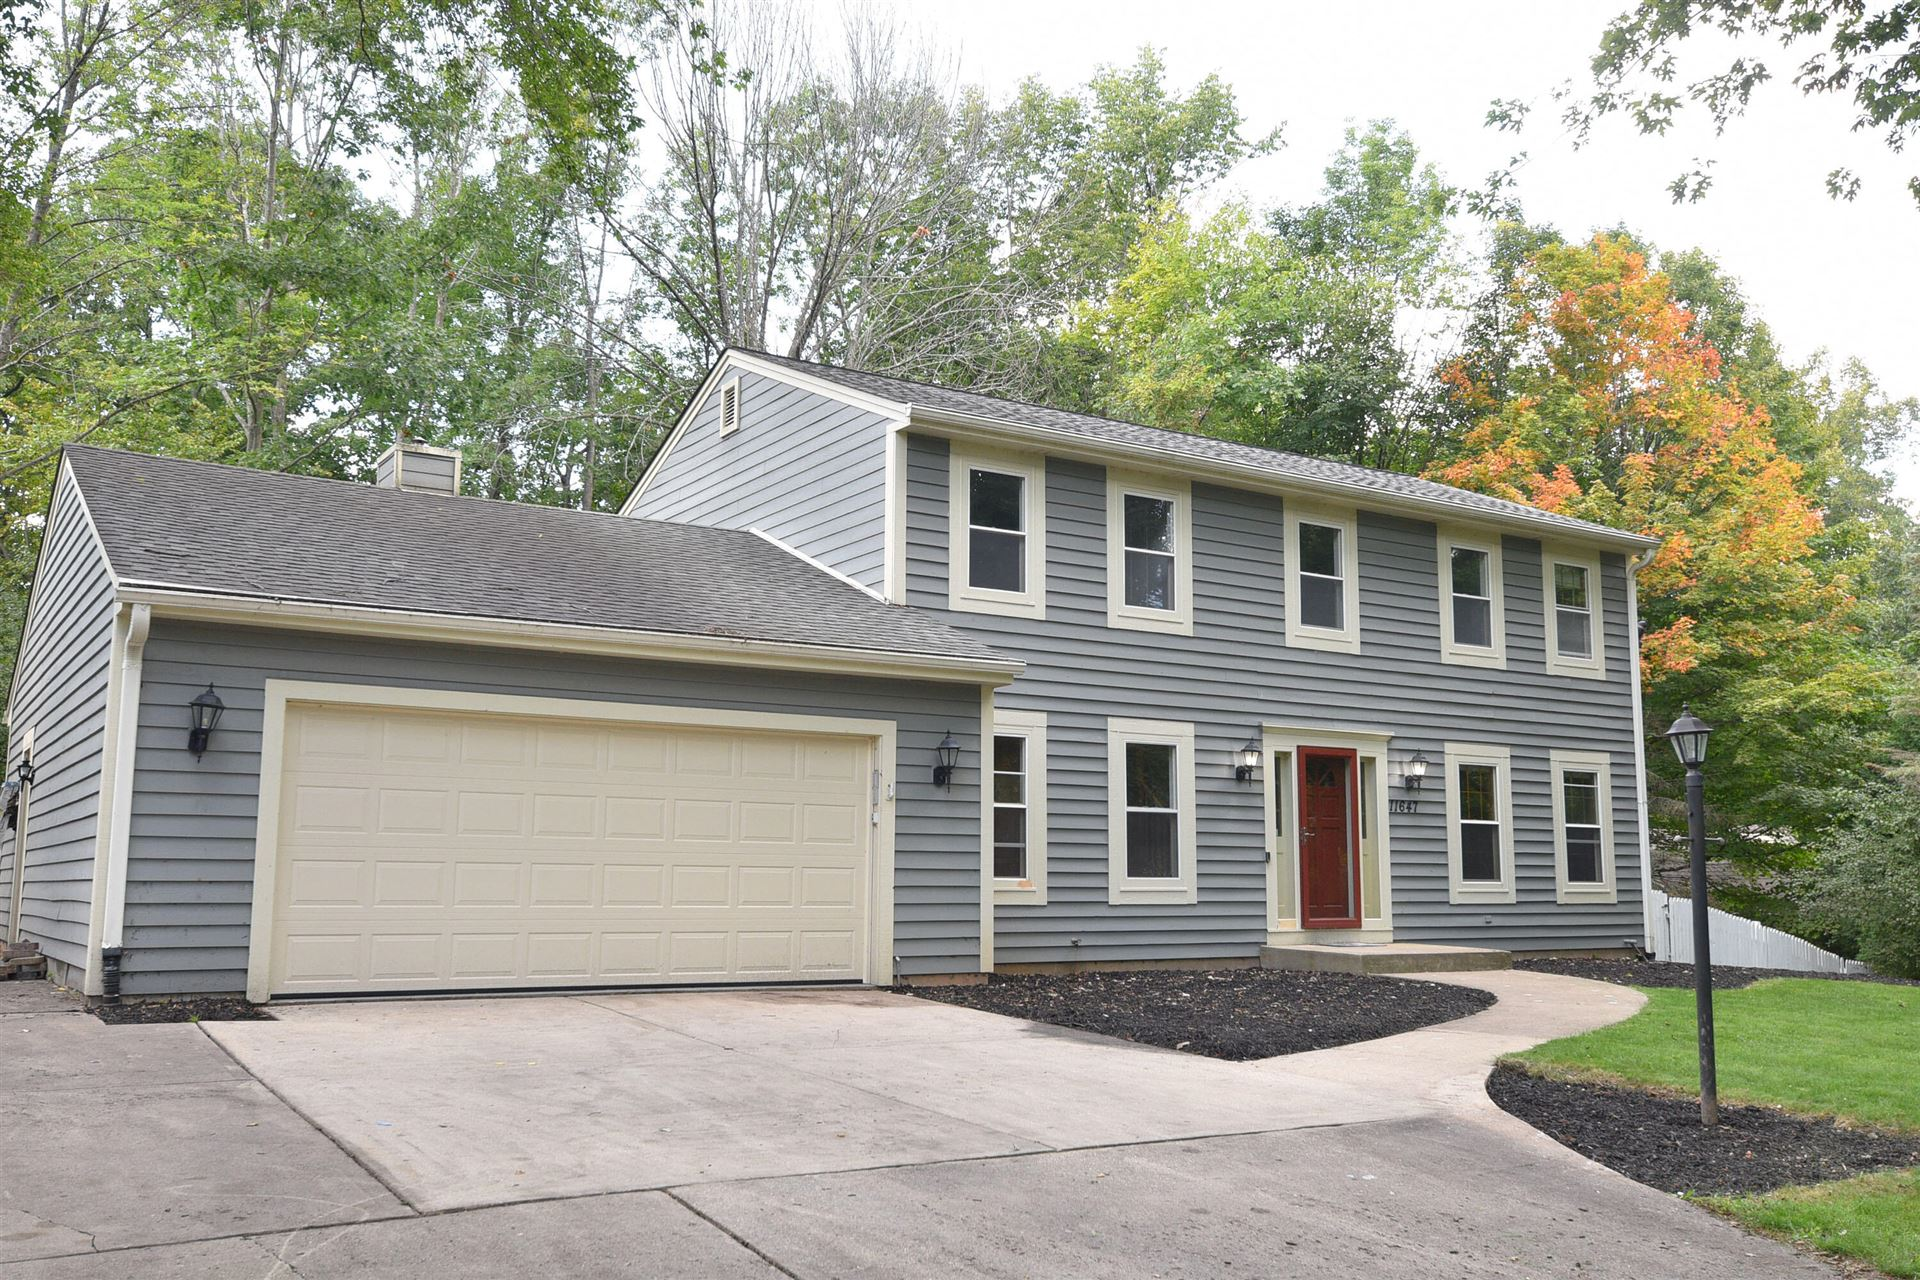 11647 N Austin Ave, Mequon, WI 53092 - #: 1759667